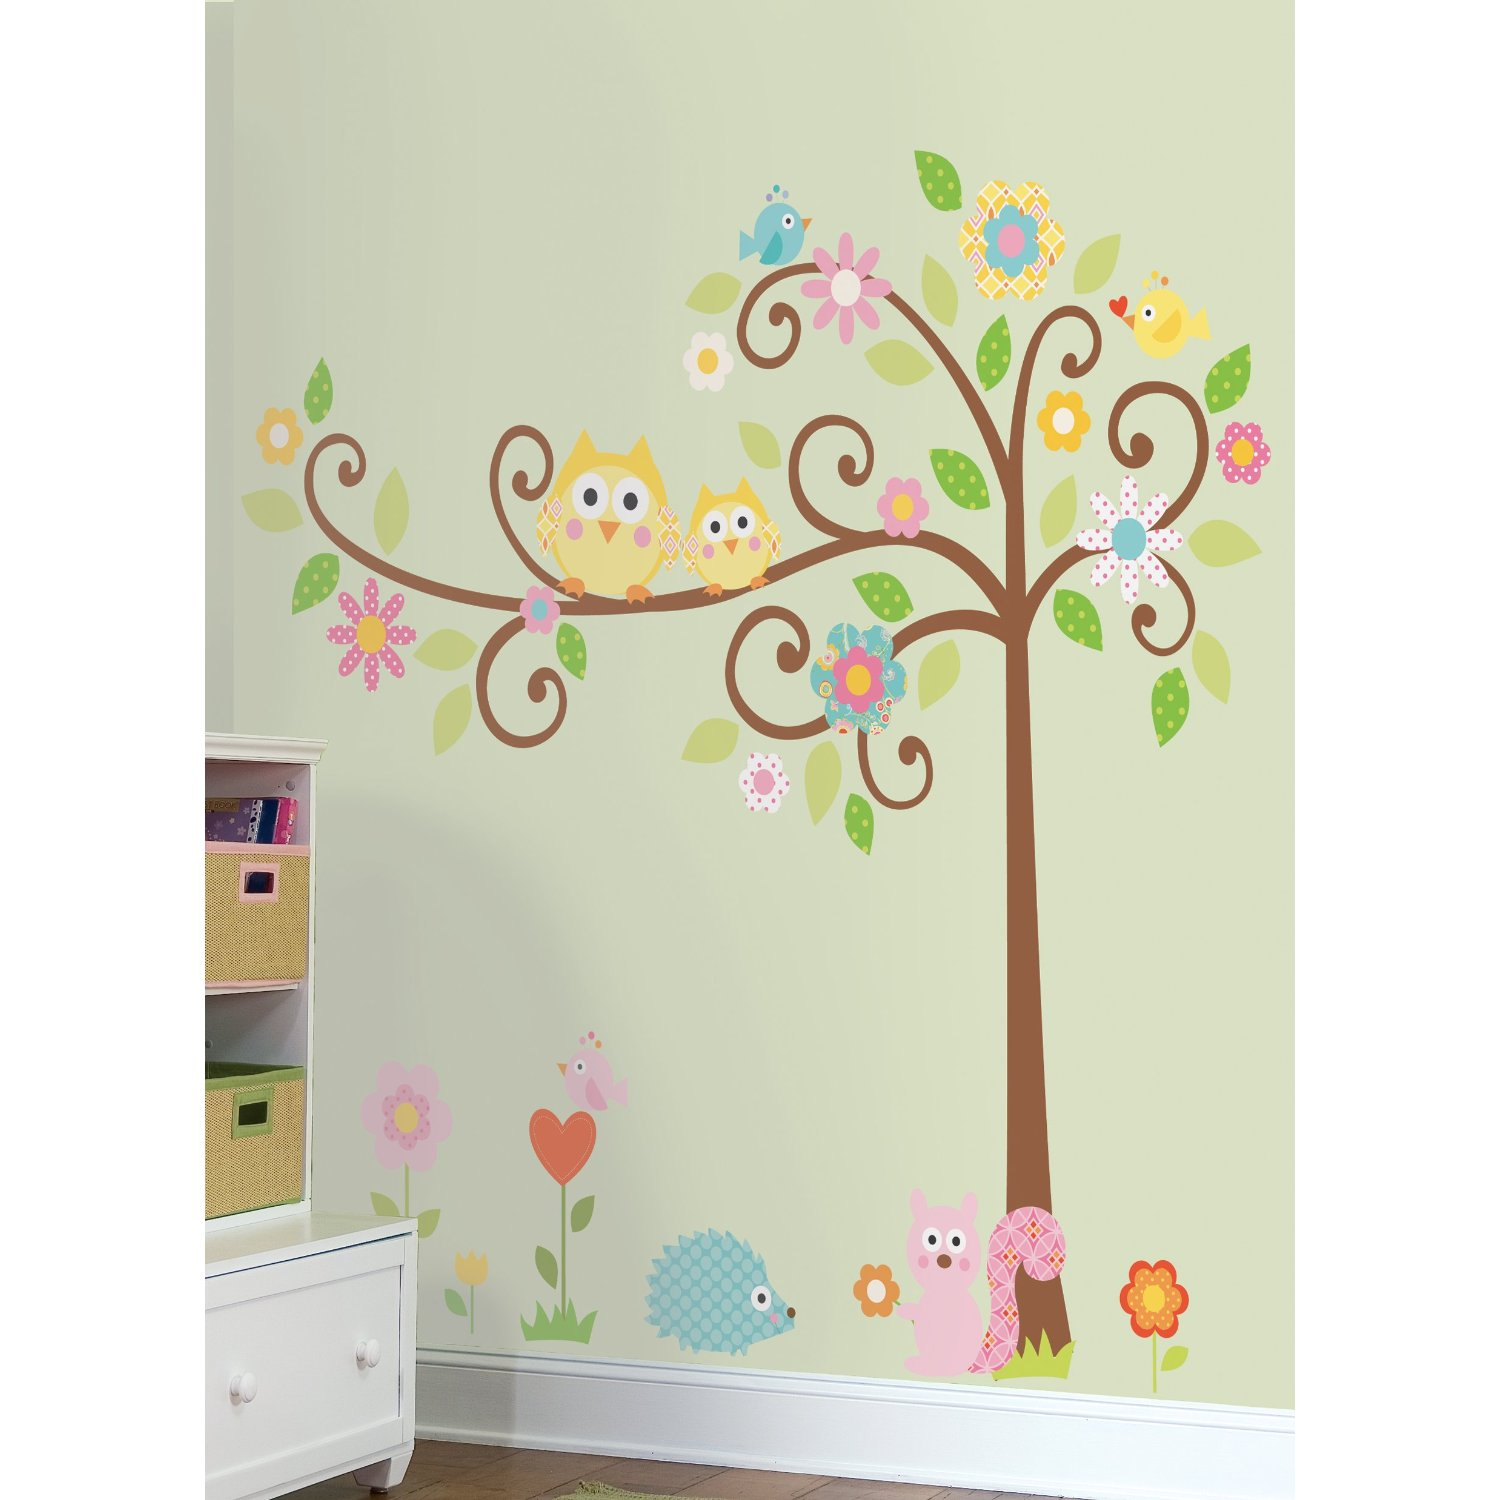 Nursery room ideas nursery wall decals for Baby nursery wall decoration